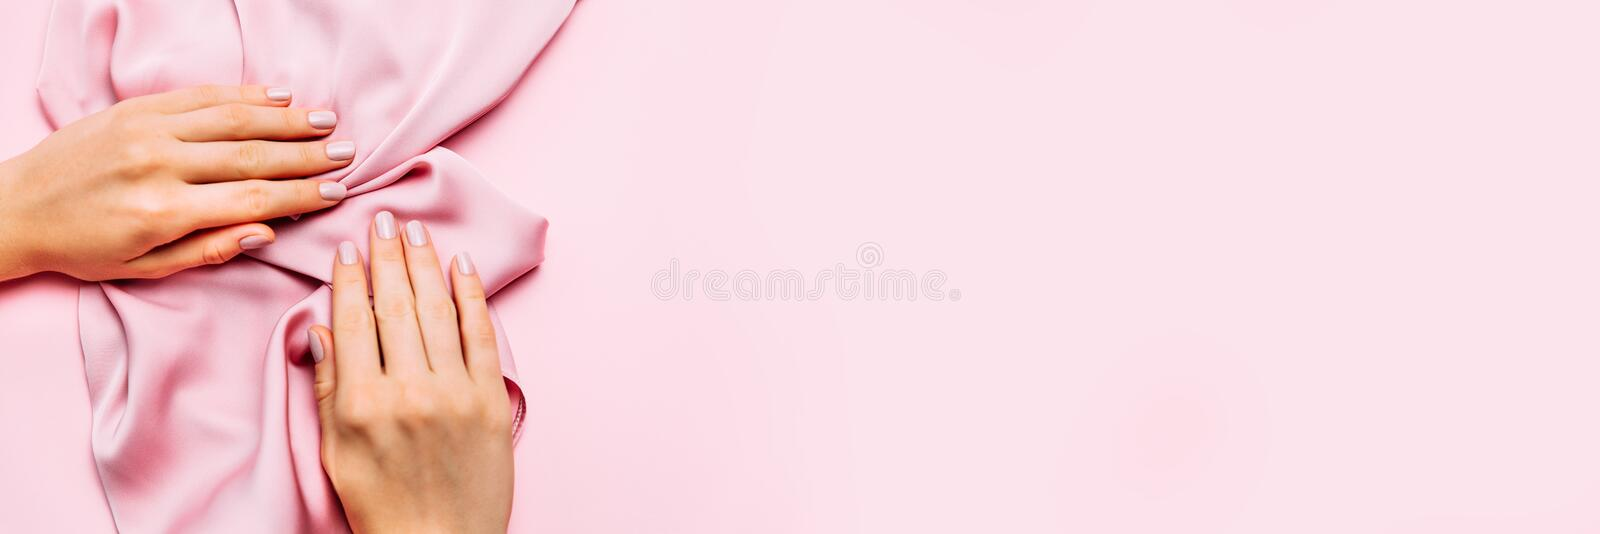 Beautiful woman manicure on creative pink background with silk fabric. Minimalist trend royalty free stock image